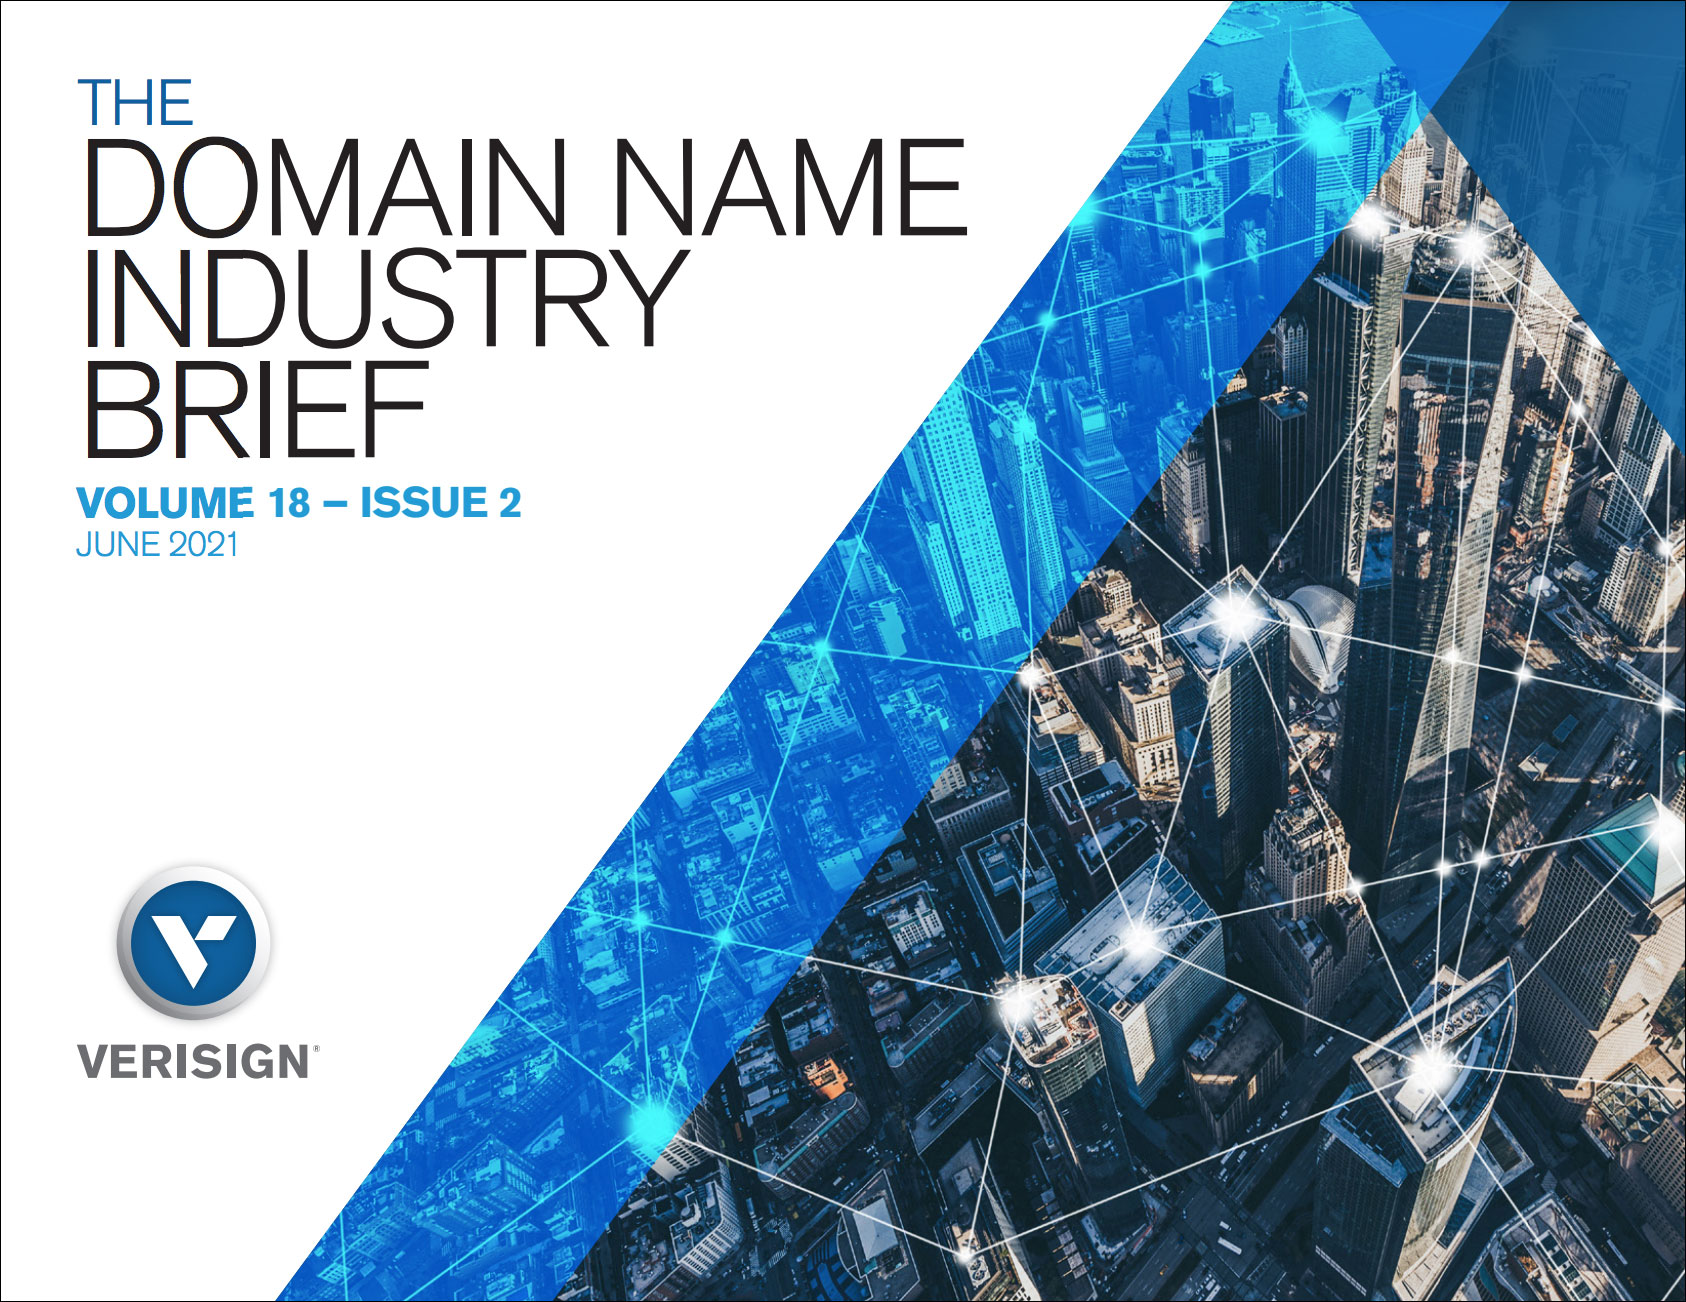 Verisign Q1 2021 Domain Name Industry Brief: 363.5 Million Domain Name Registrations in Q1 2021